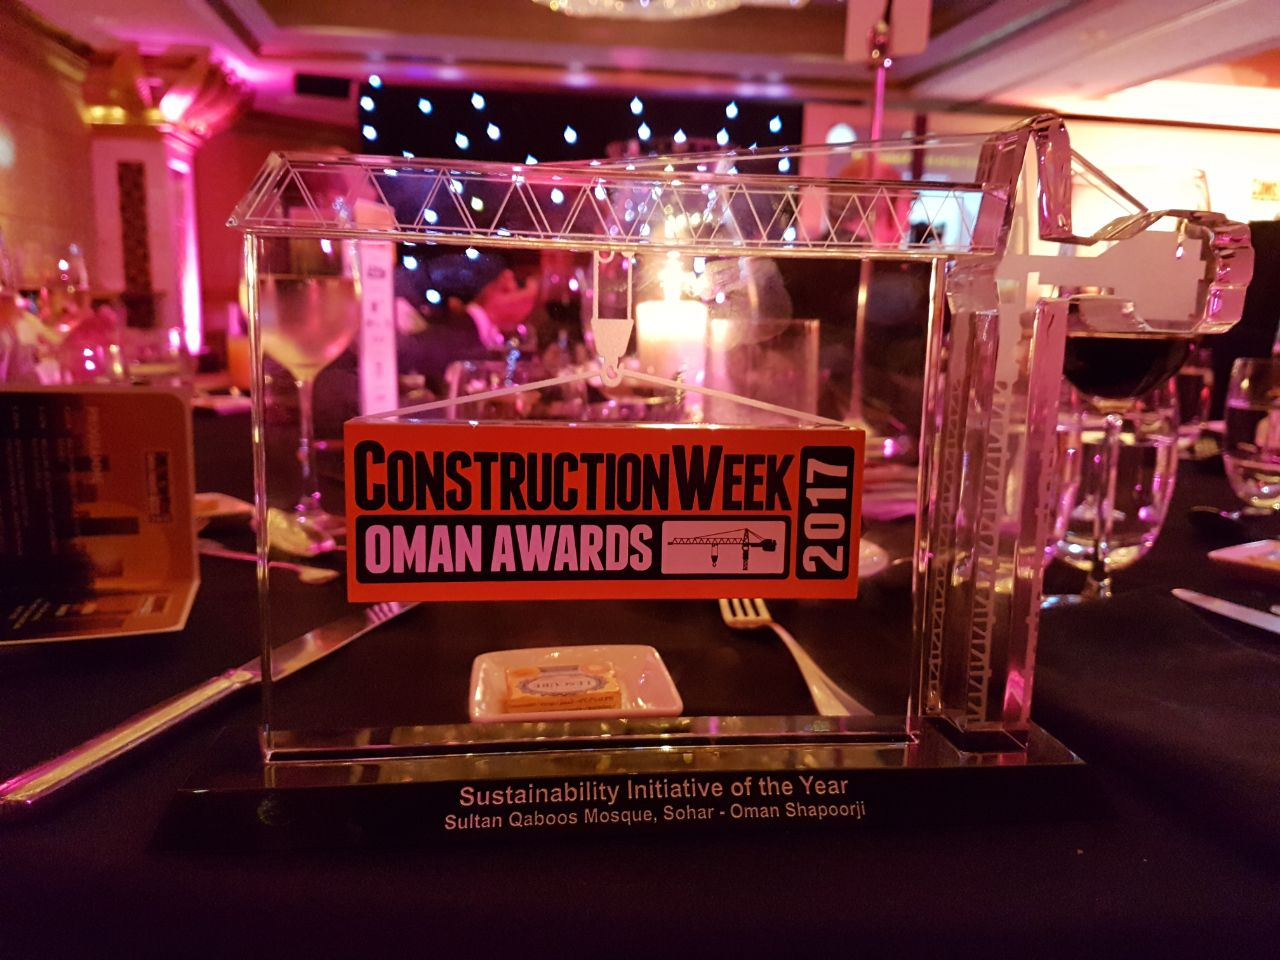 Construction Week Award 2017 - OSCO